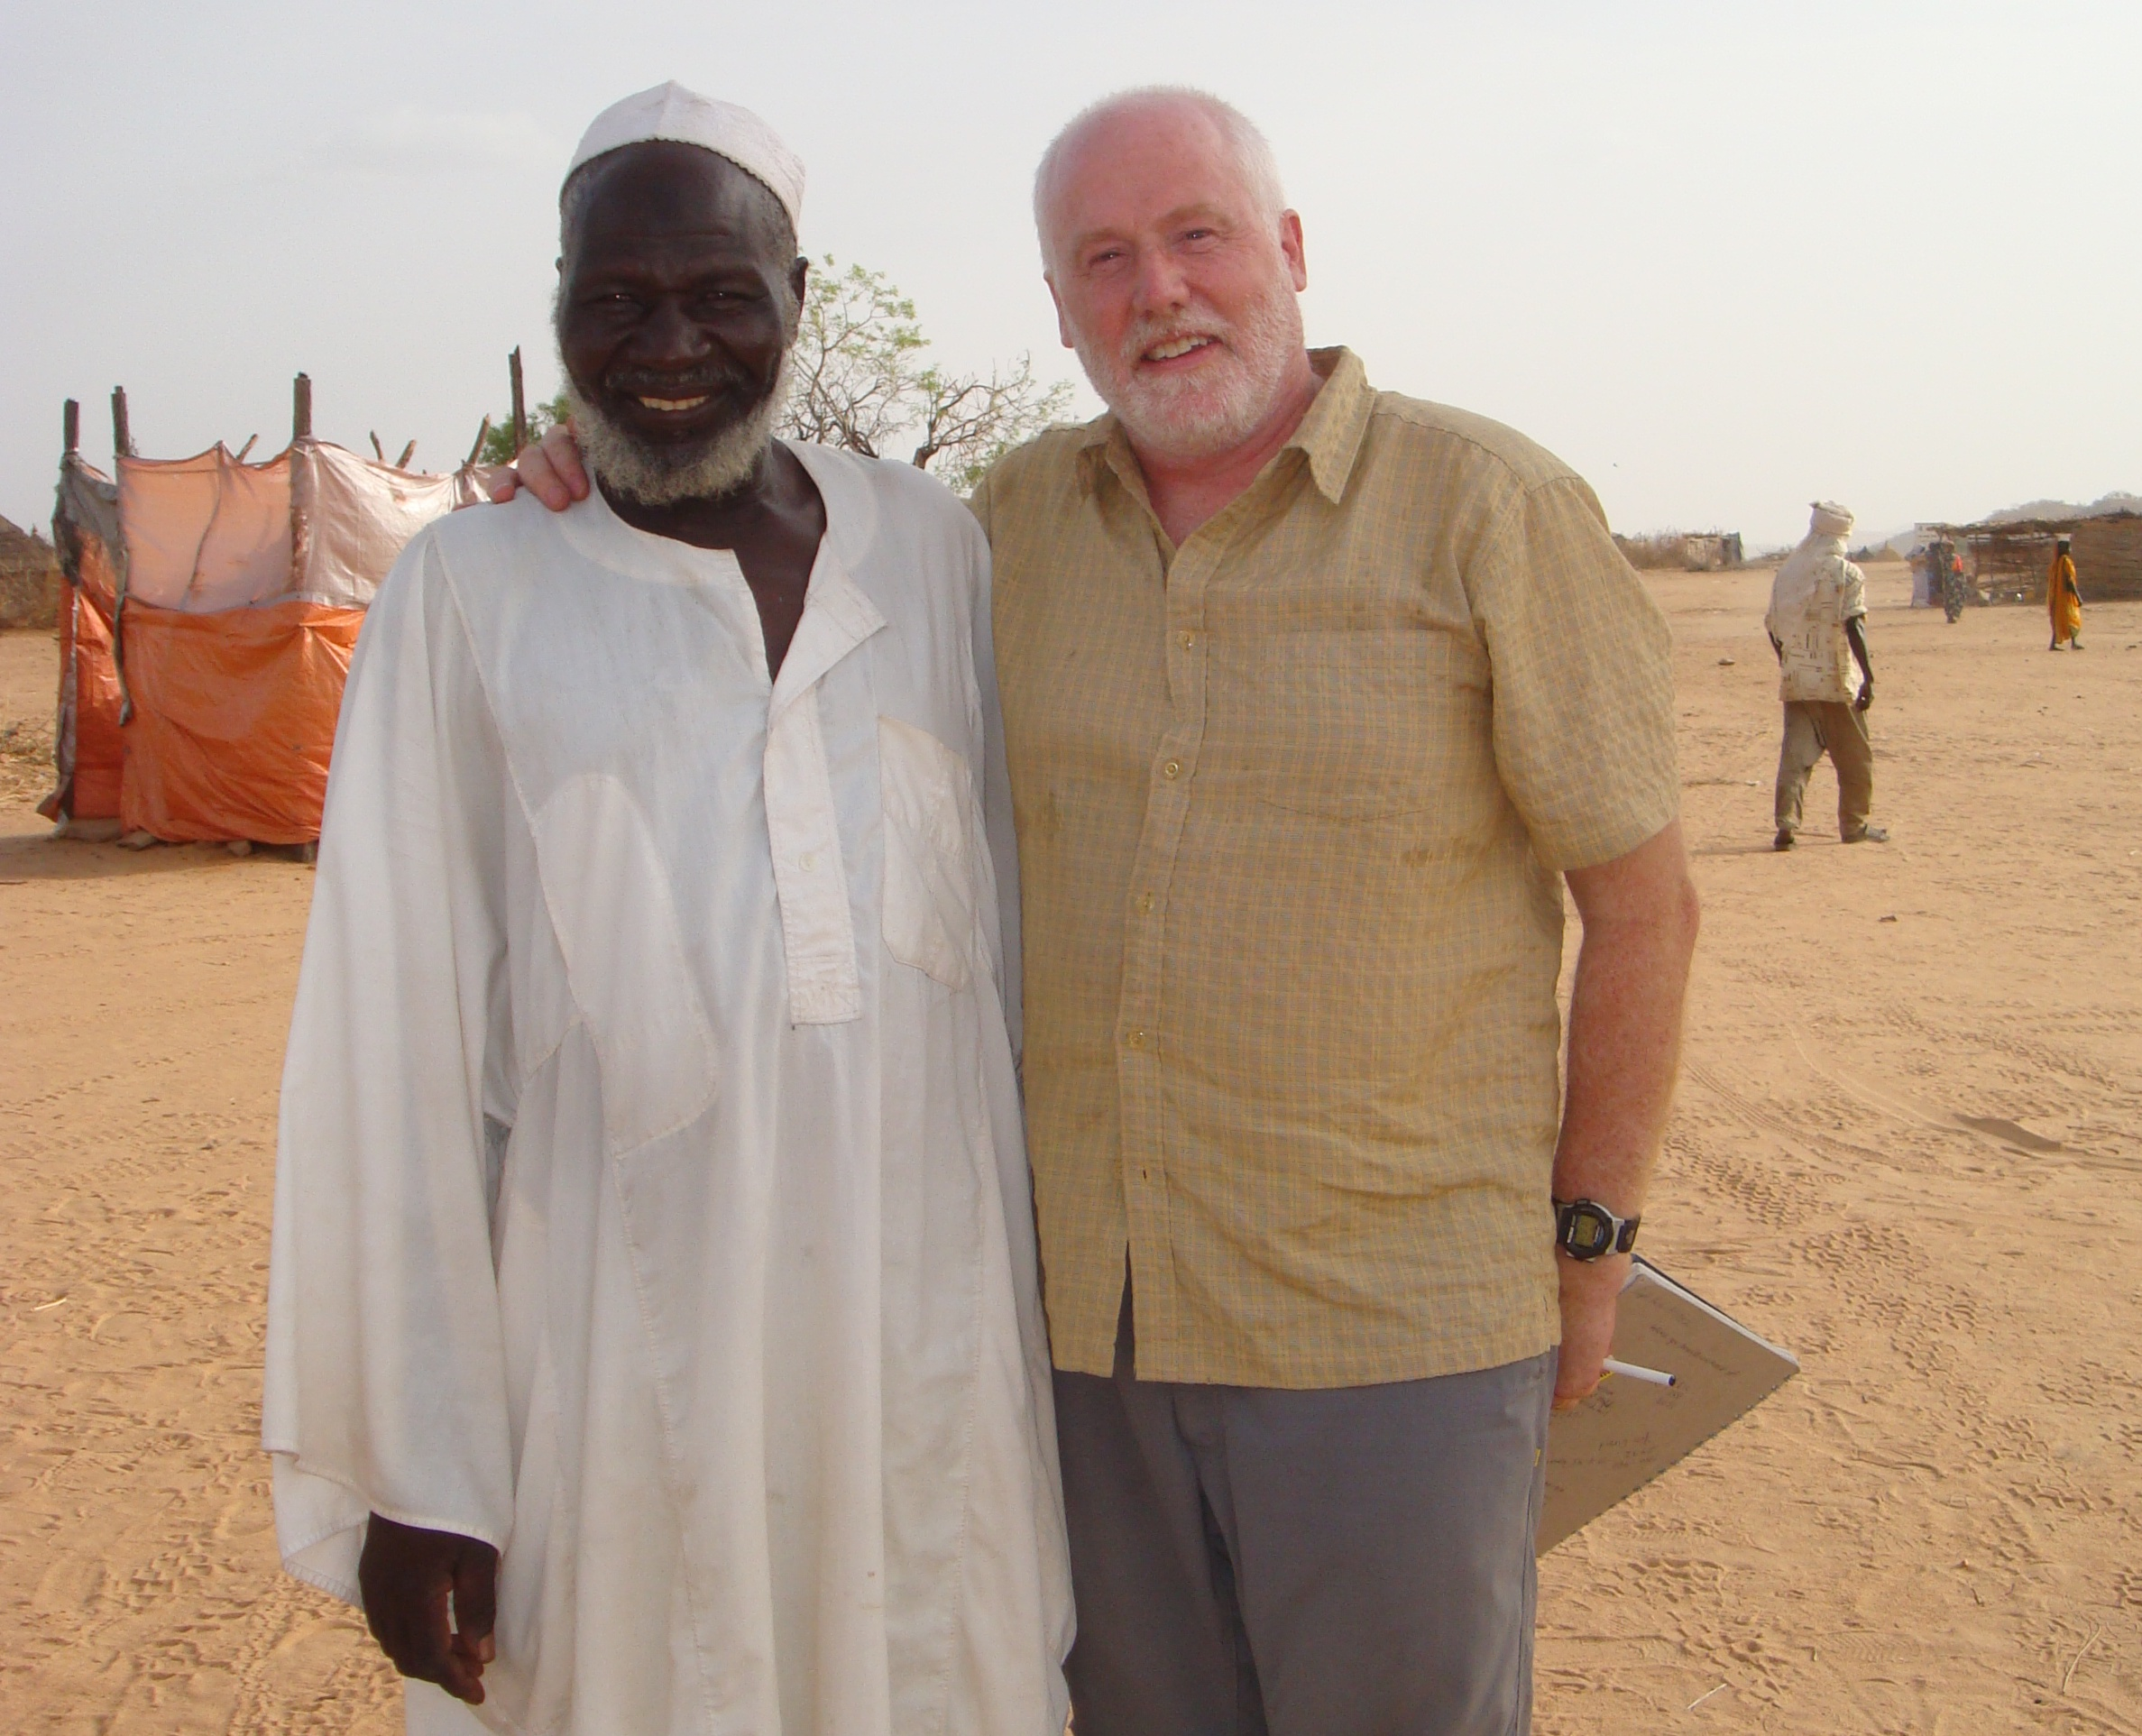 AI Canada's Secretary General Alex Neve reunites with village chief Abakar Yusuf